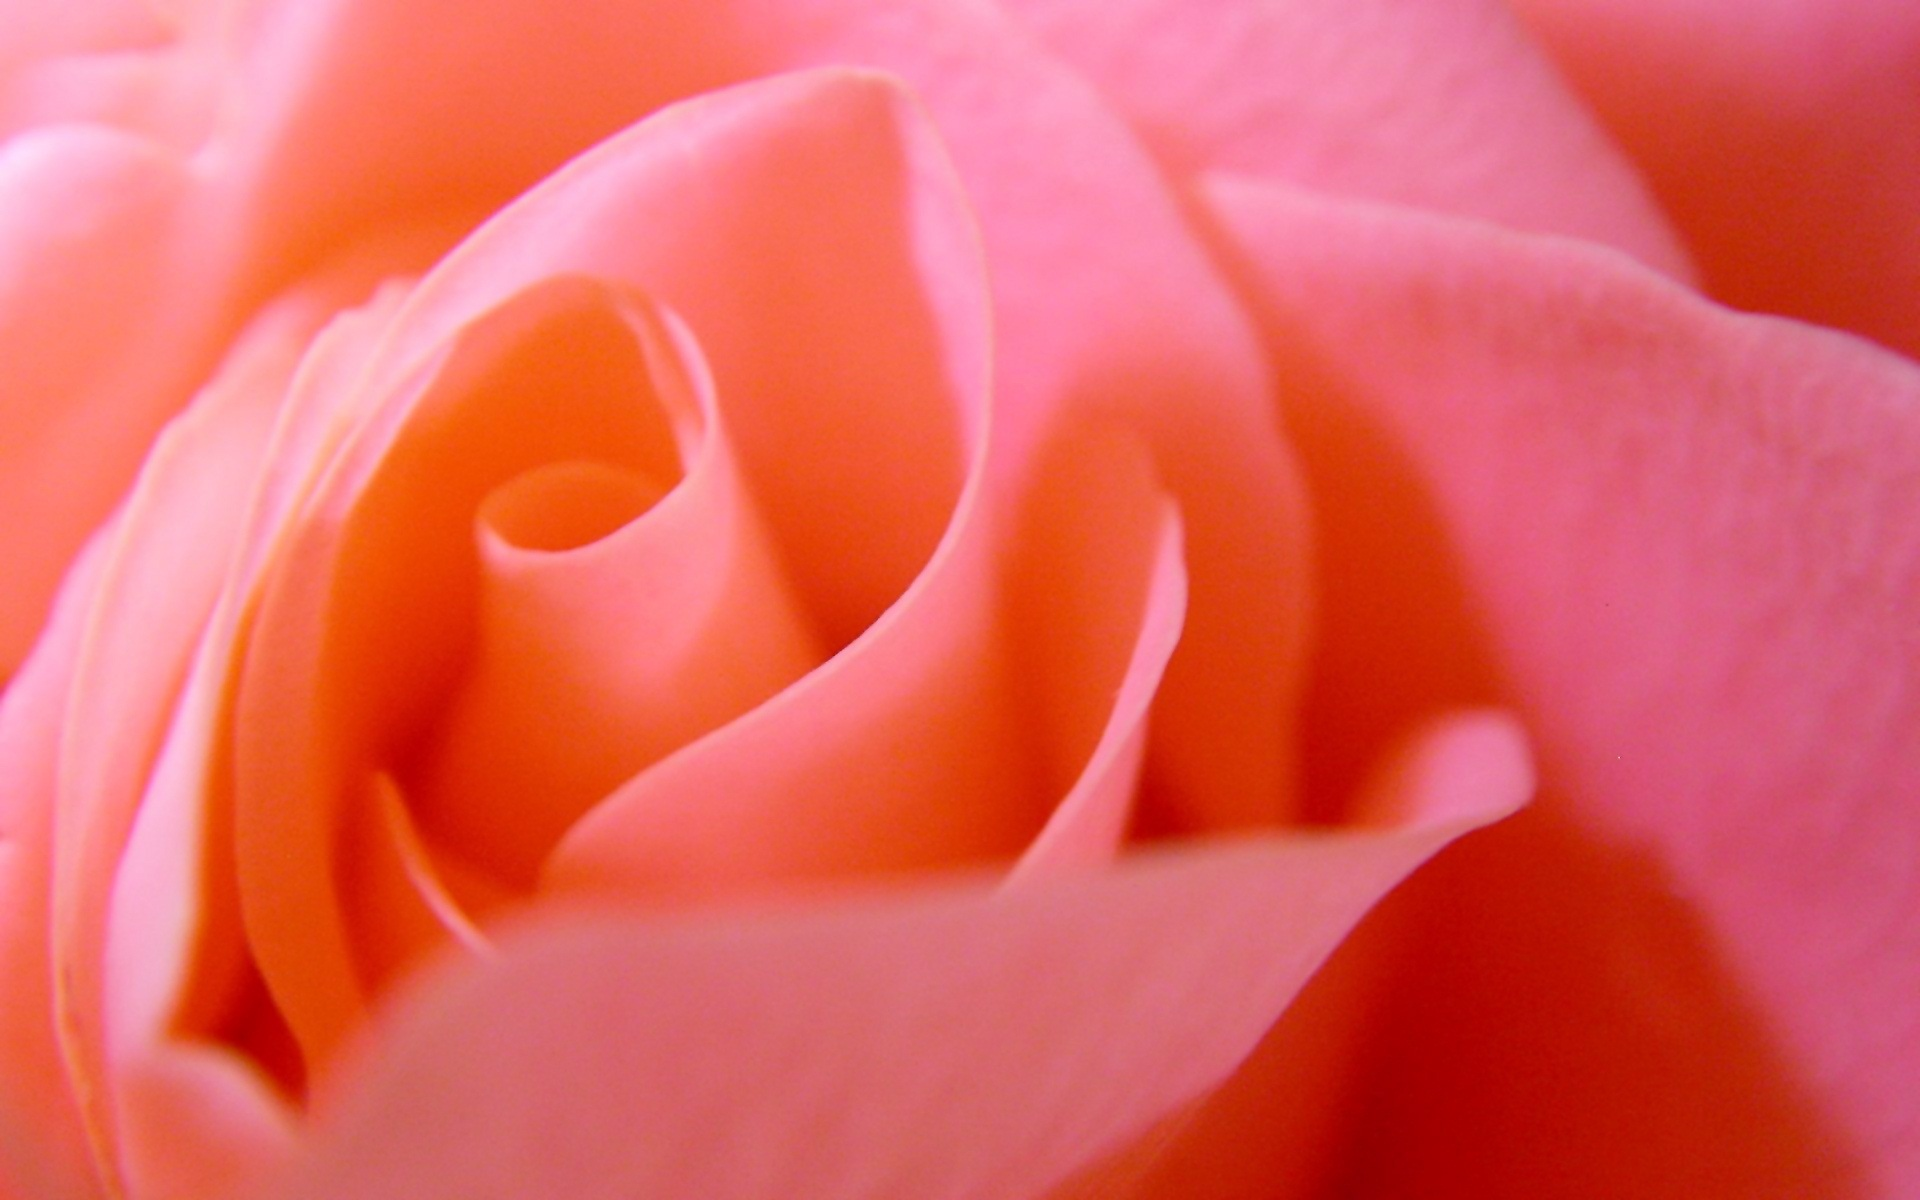 Rose Pink Wonderful Rose With Natural Flower Pink Rose – HD Wallpaper